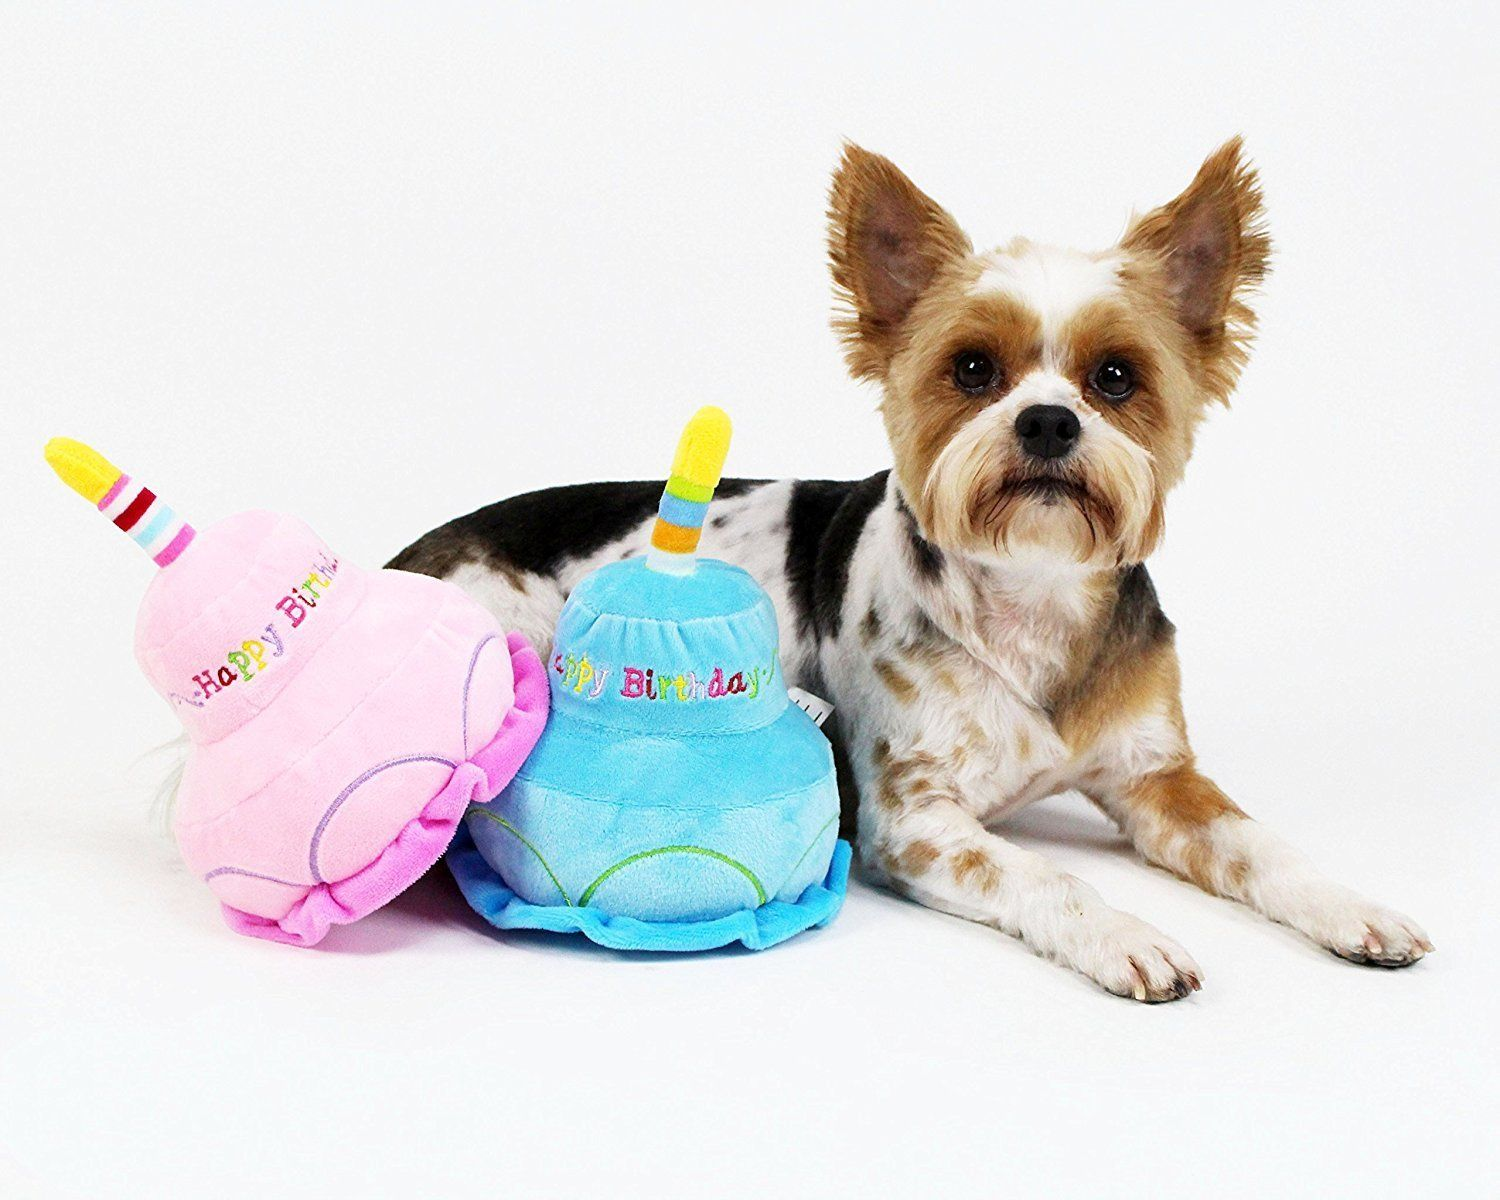 Pet Supplies 2 Layer Birthday Cake Dog Toy By Midlee Pink